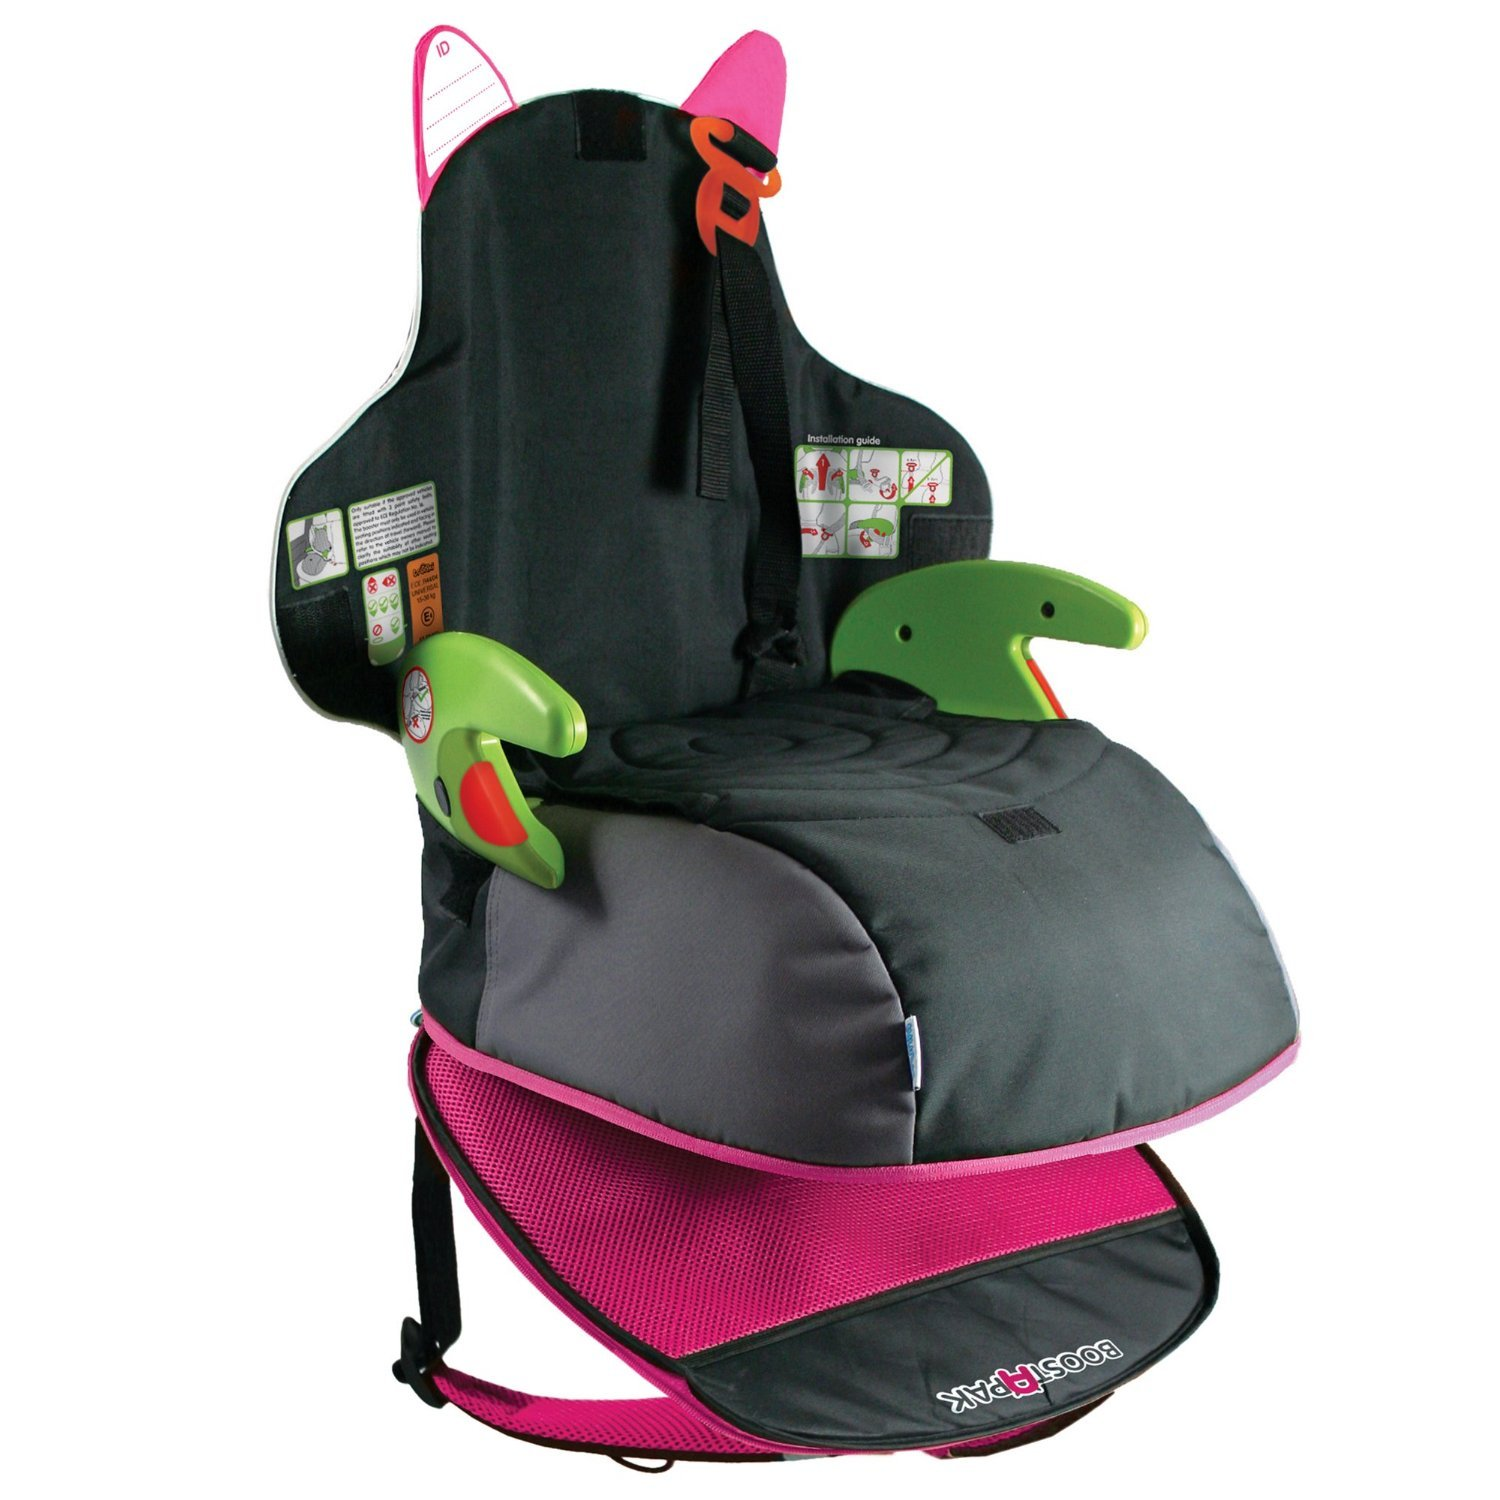 Trunki Travel Booster Seat